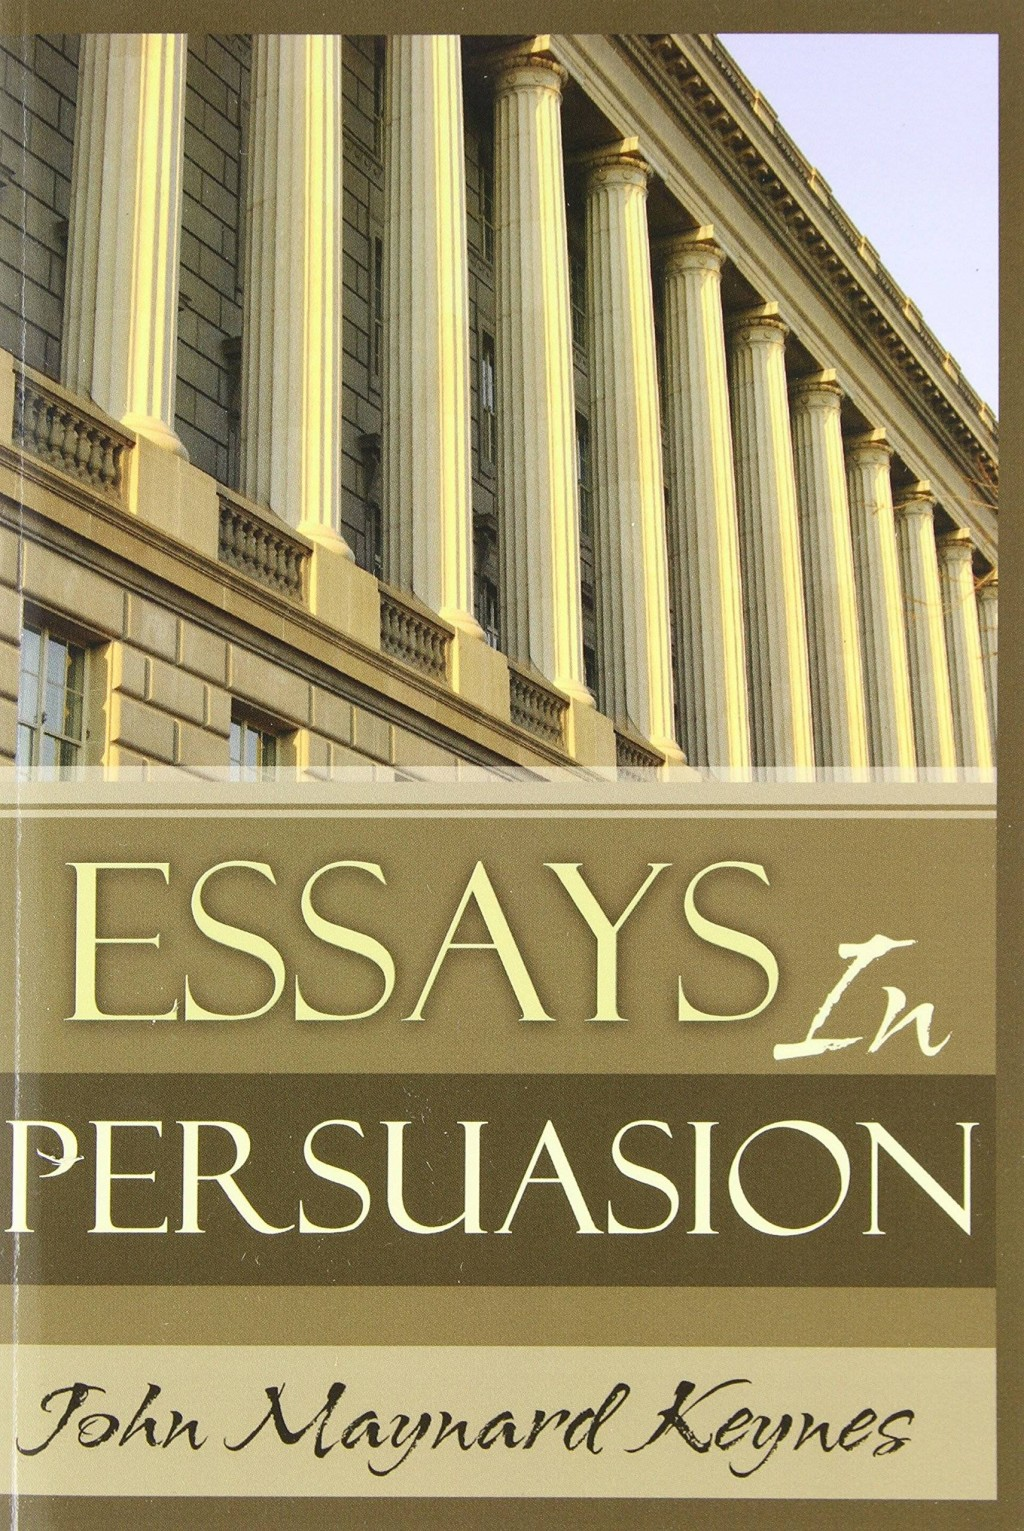 007 Essay Example Essays In Persuasion By John Maynard Remarkable Keynes 1931 Wikipedia Summary Large